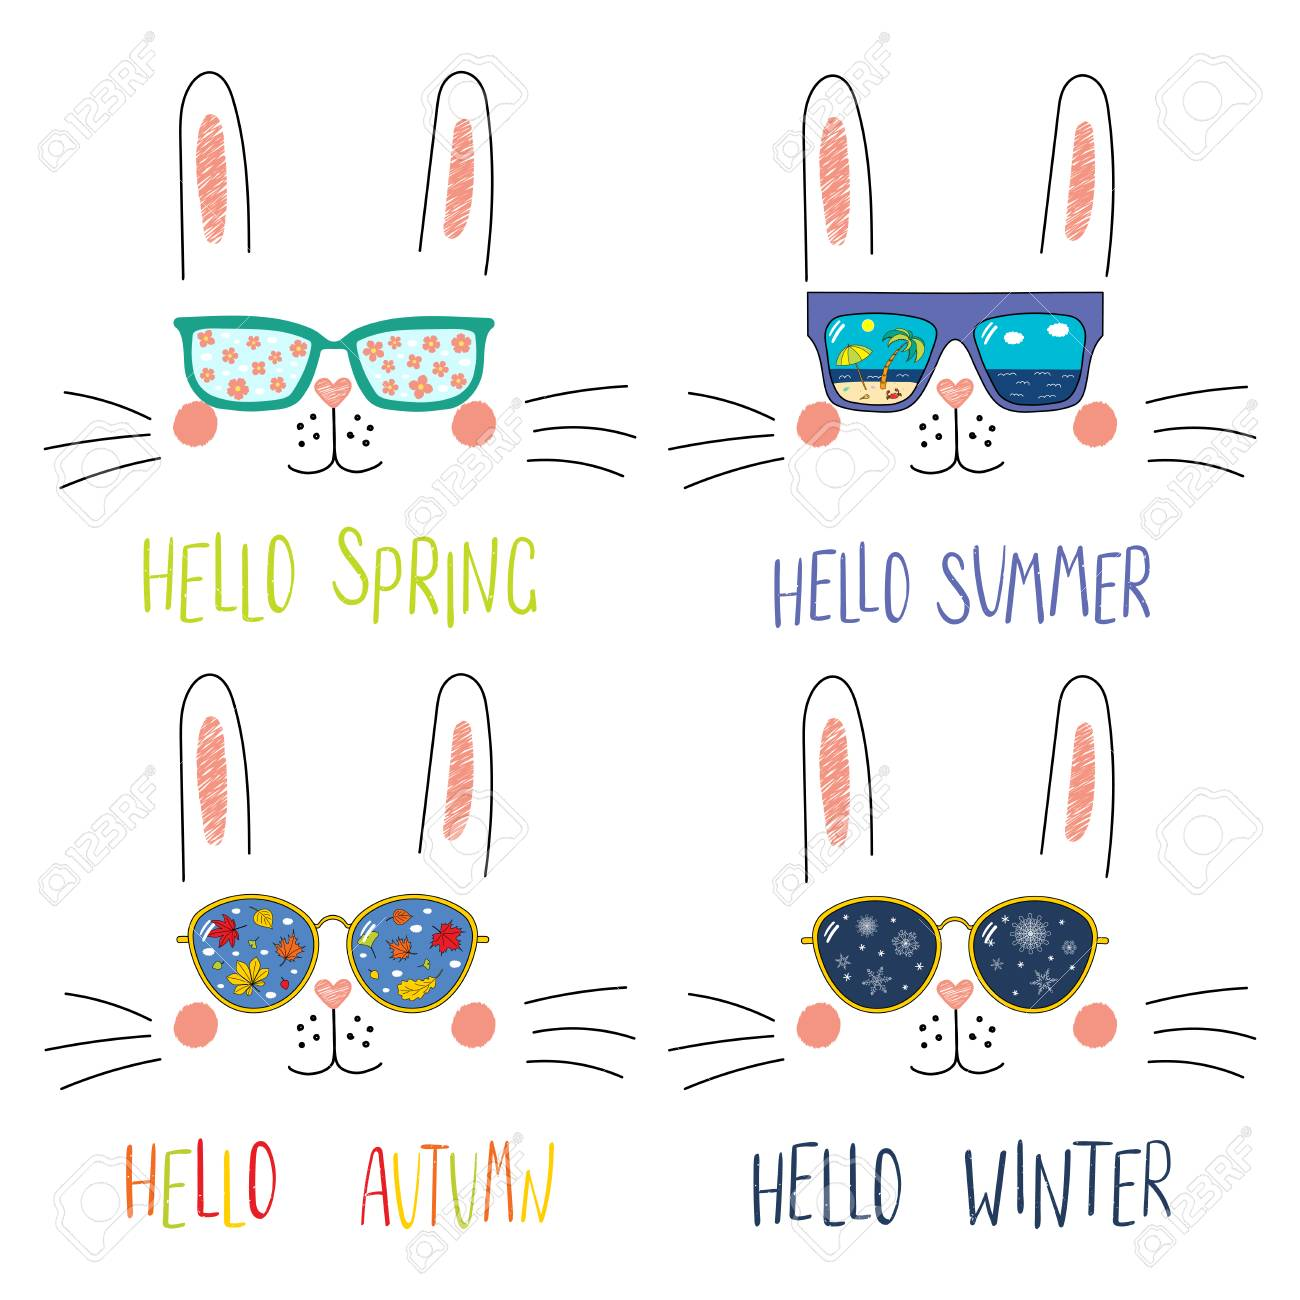 1509c9a6d7 Concept four seasons. Set of cute bunny faces in sunglasses with summer